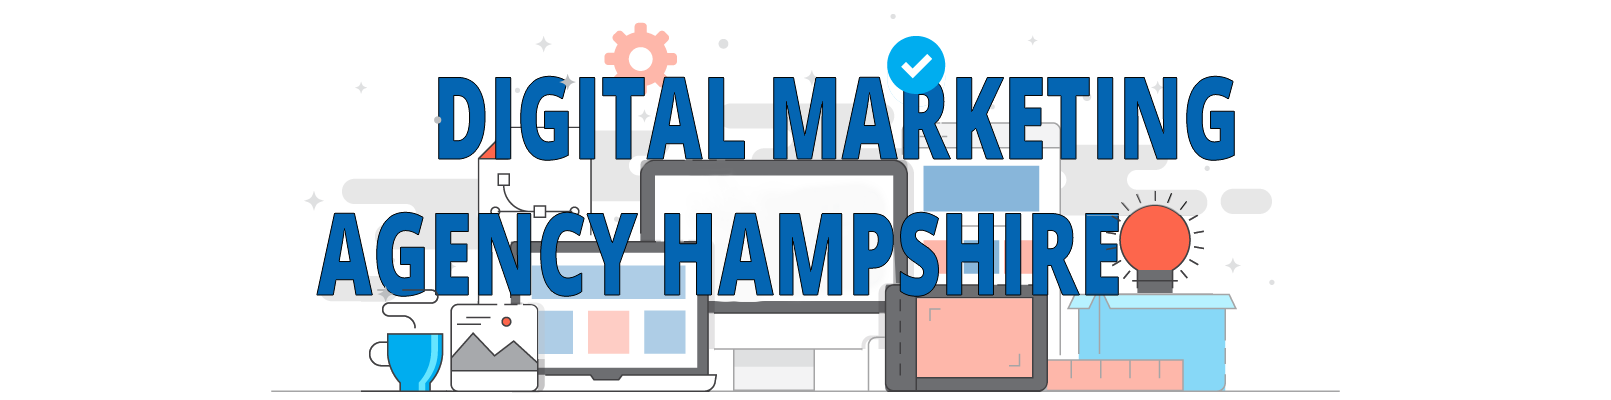 digital marketing agency in hampshire